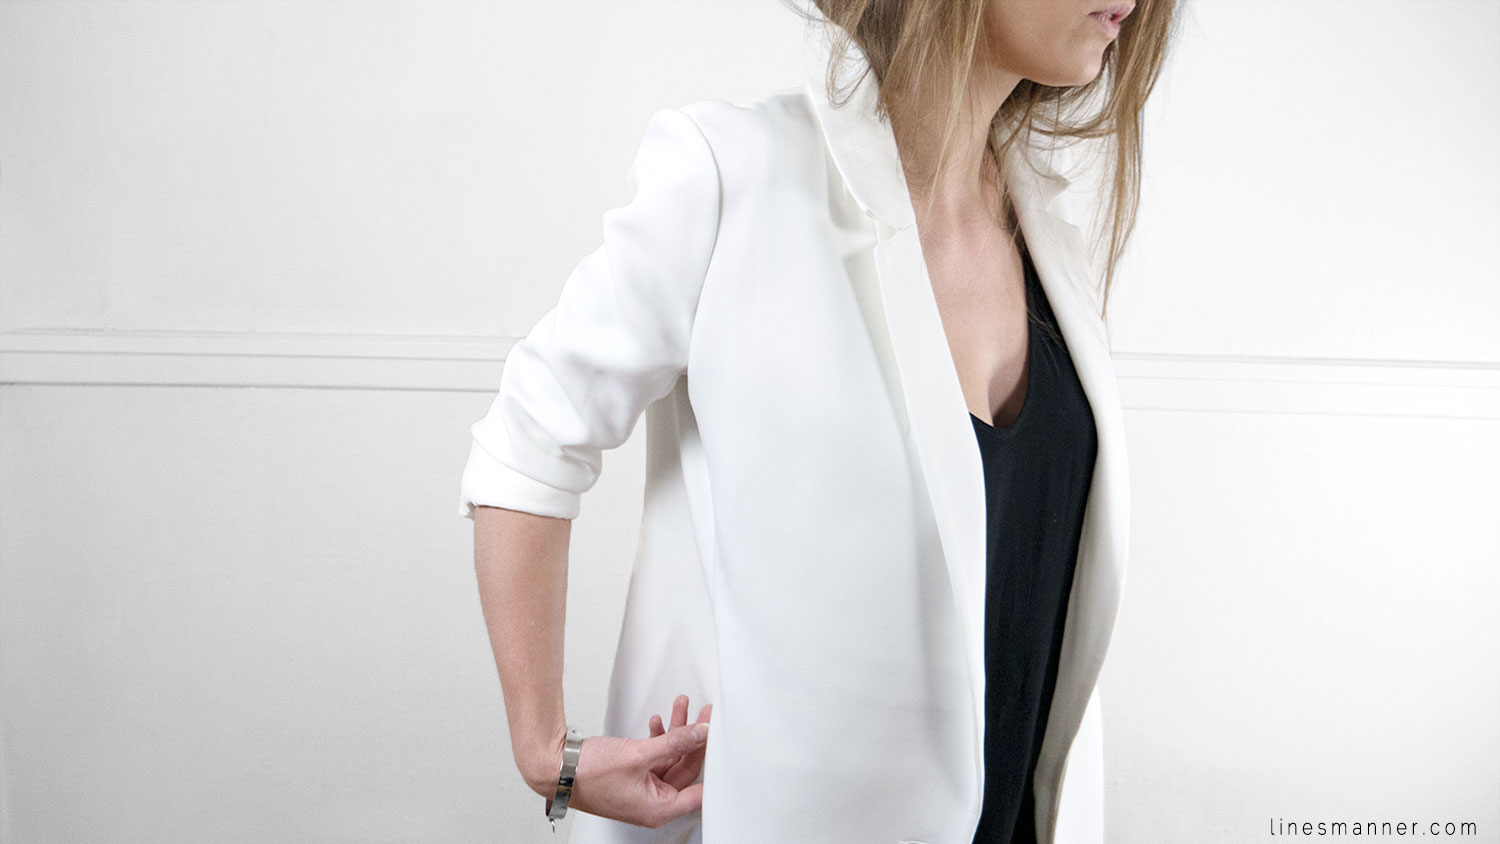 Lines-Manner-Minimal-White-Blazer-Quality-Essential-Brightly-Fresh-Sophistication-Staple-Classics-11